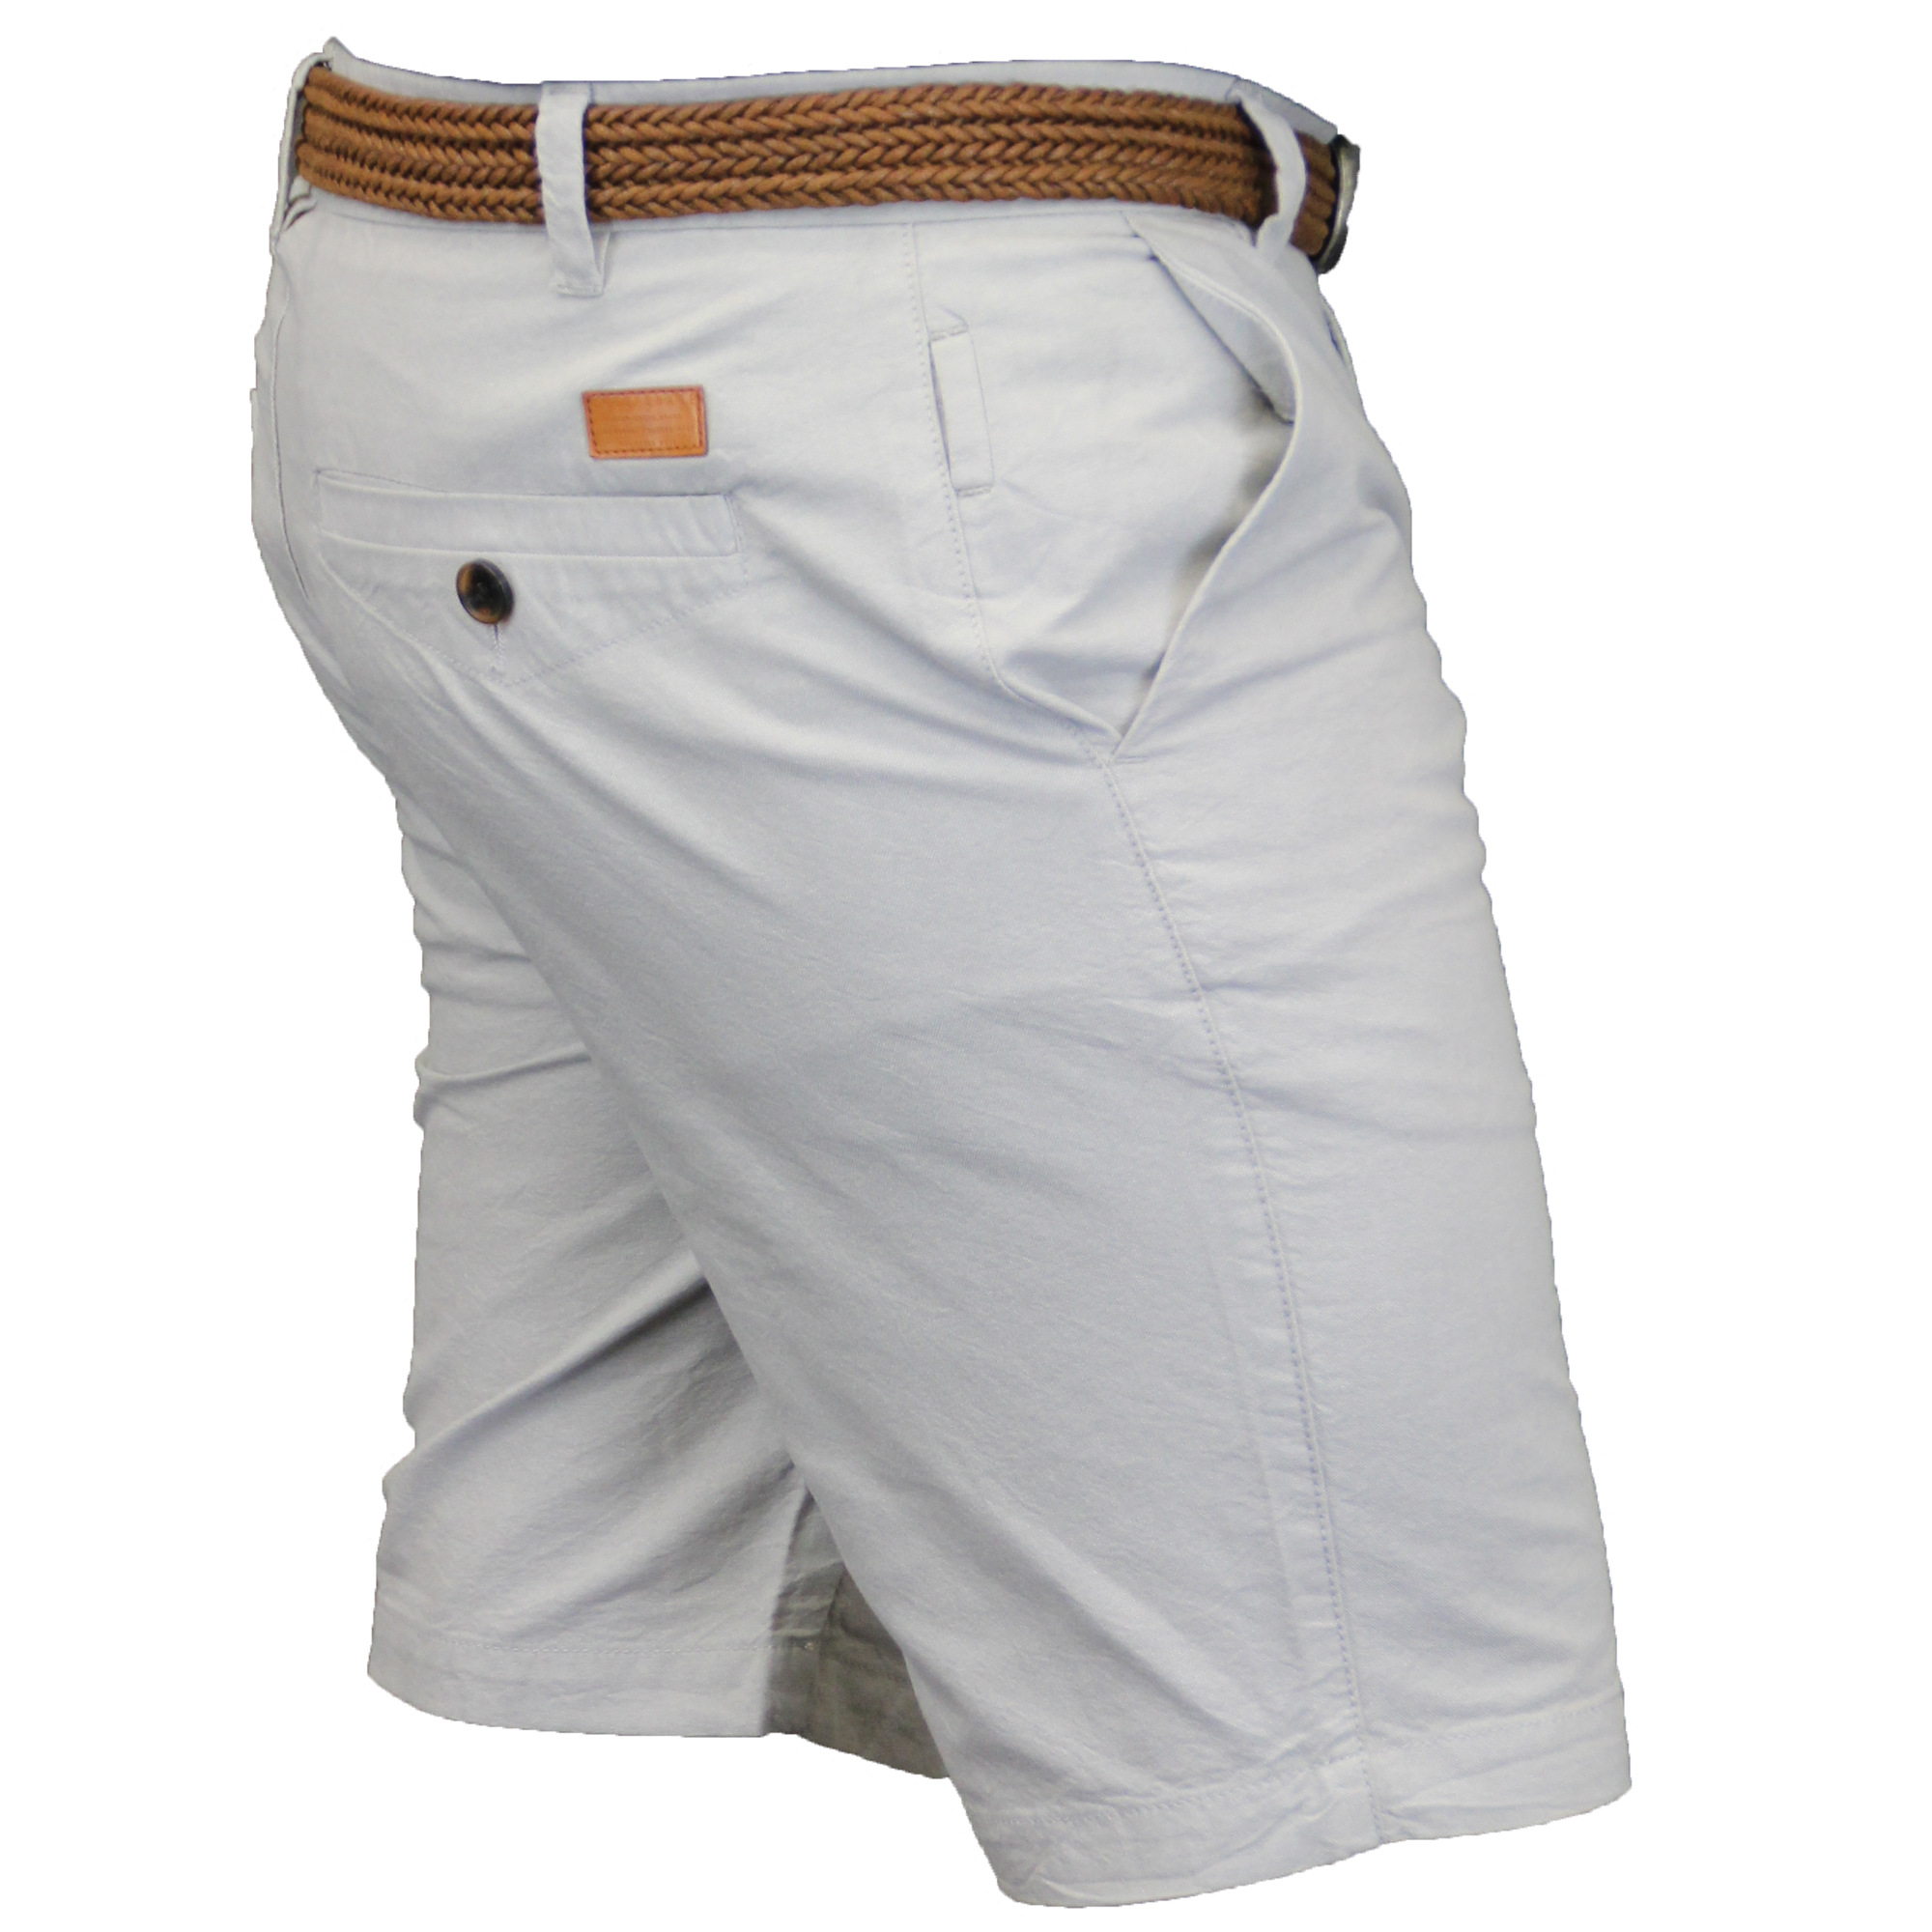 Mens-Chino-Shorts-Threadbare-Cotton-Oxford-Belted-Loyalty-amp-Faith-Seven-Series thumbnail 17